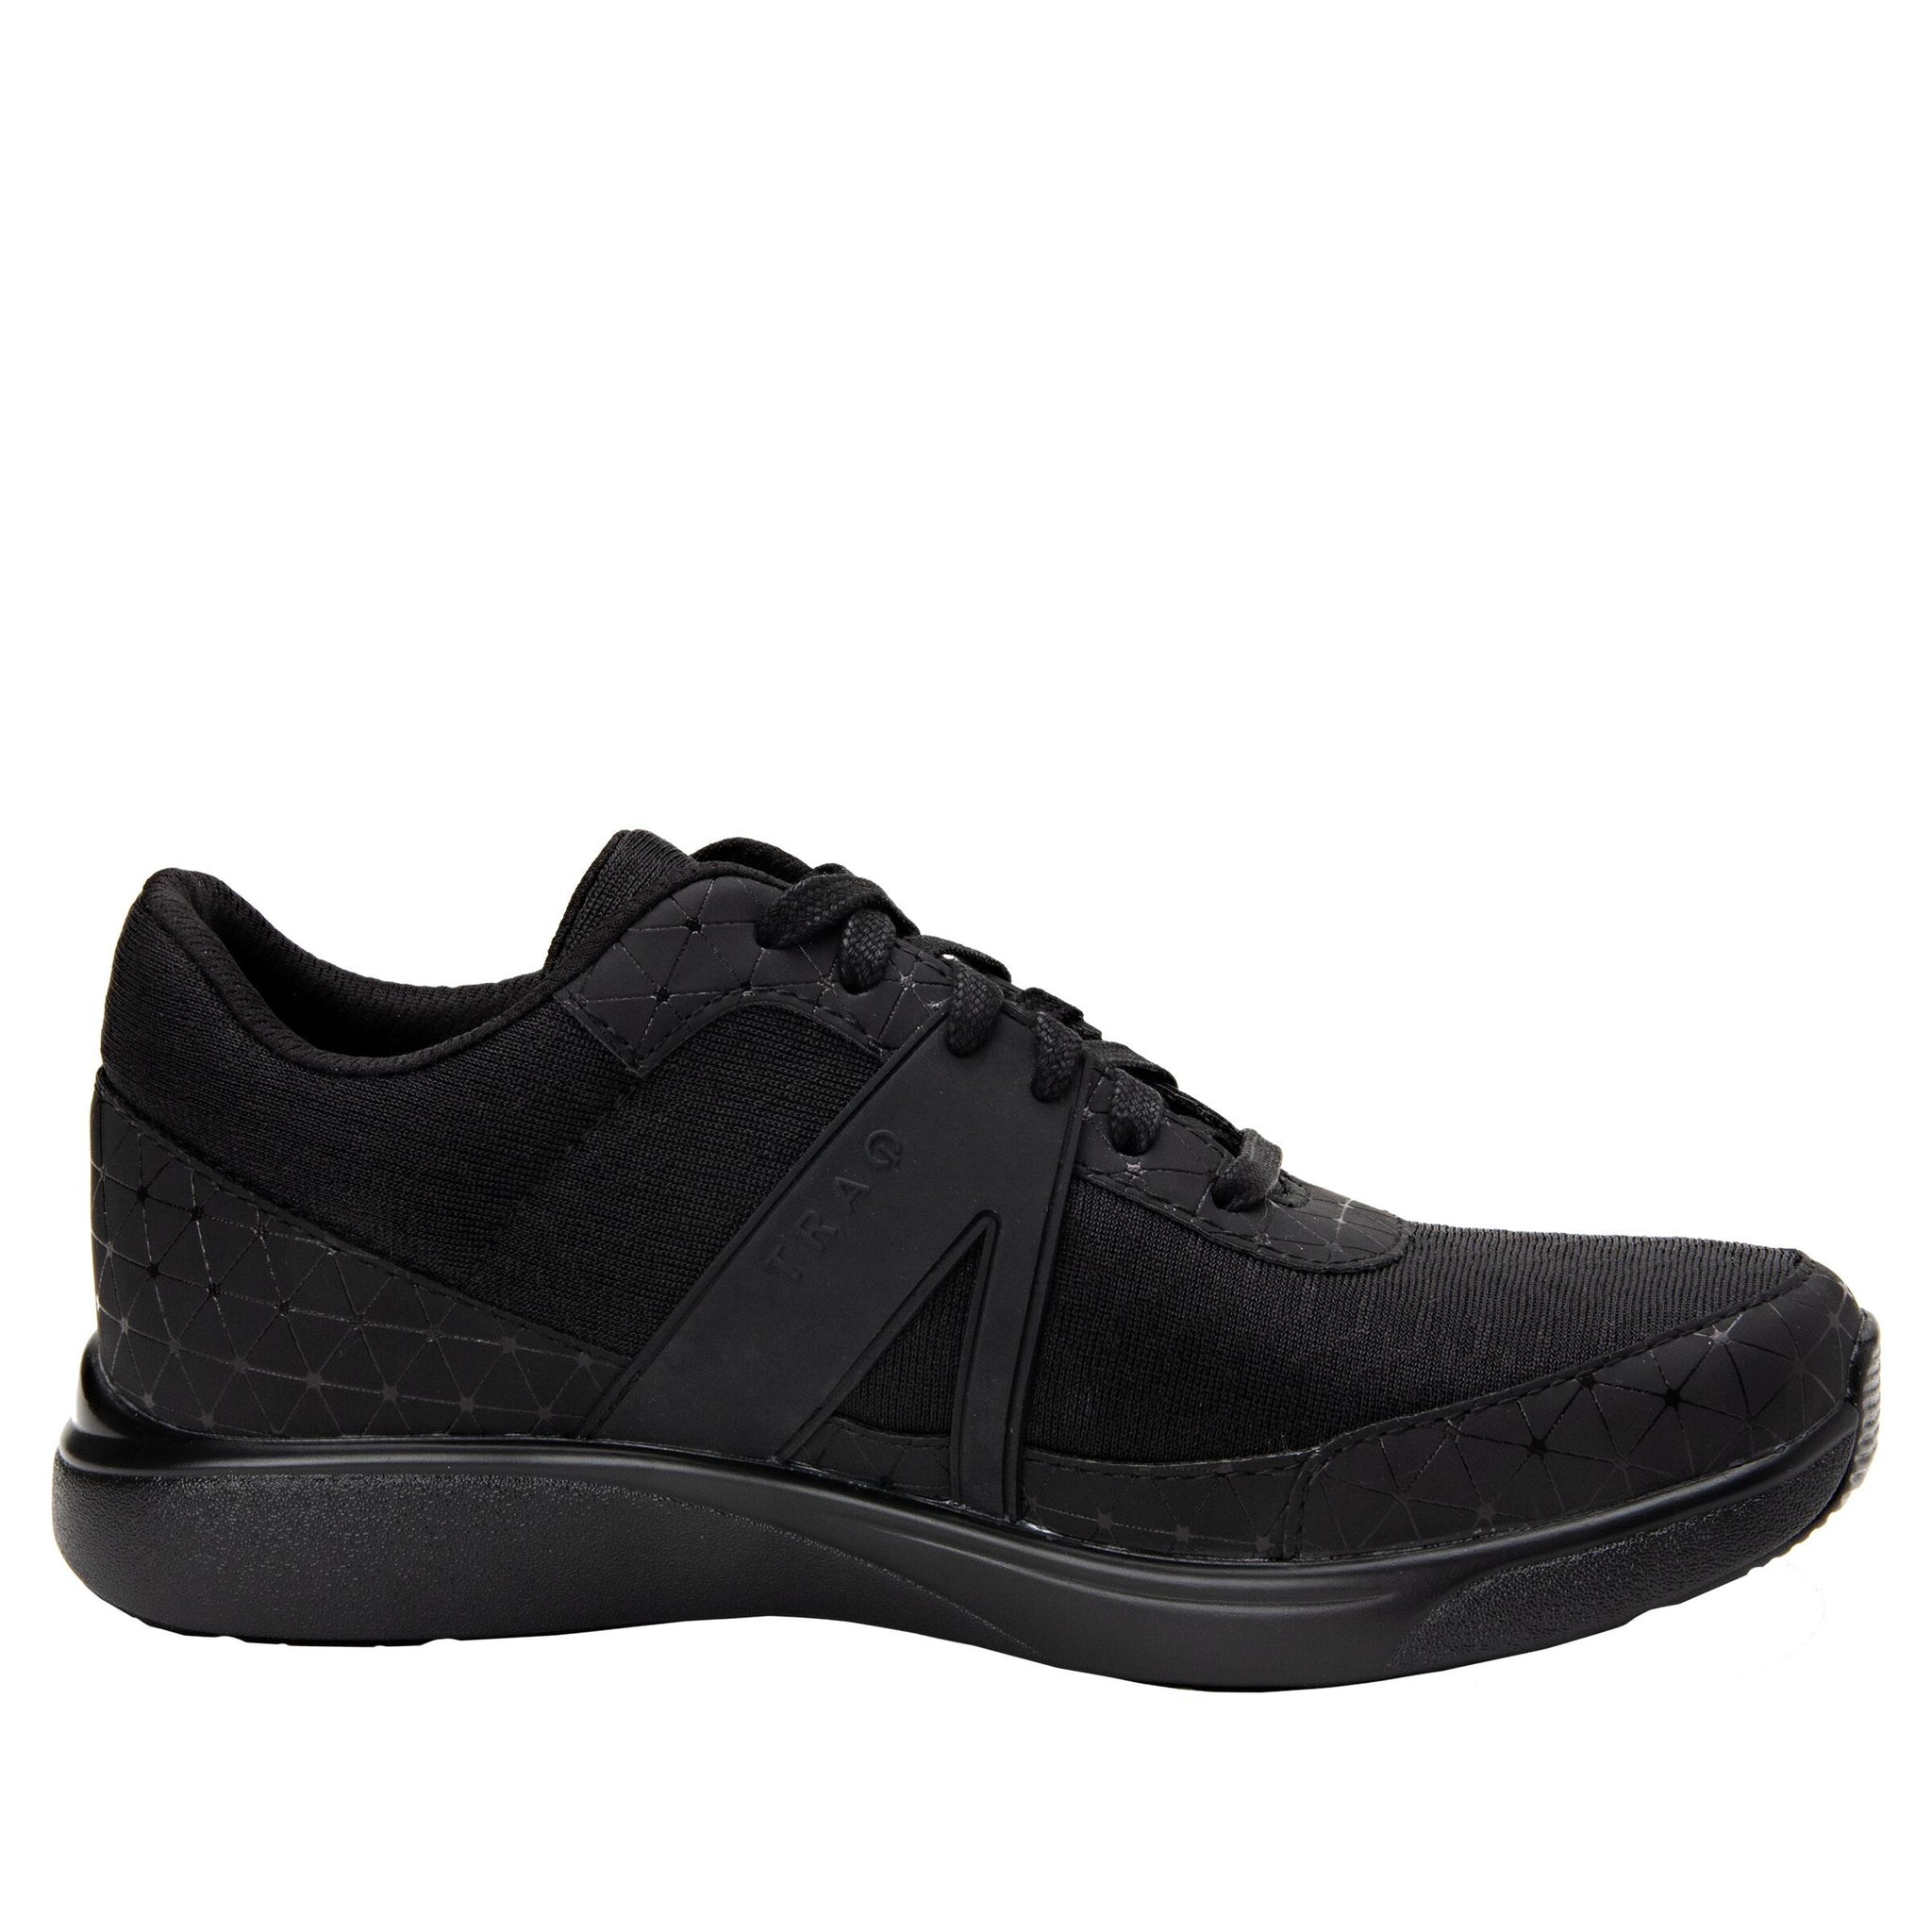 ALEGRIA LADIES TRAQ QARMA BLACK SWELL SHOE